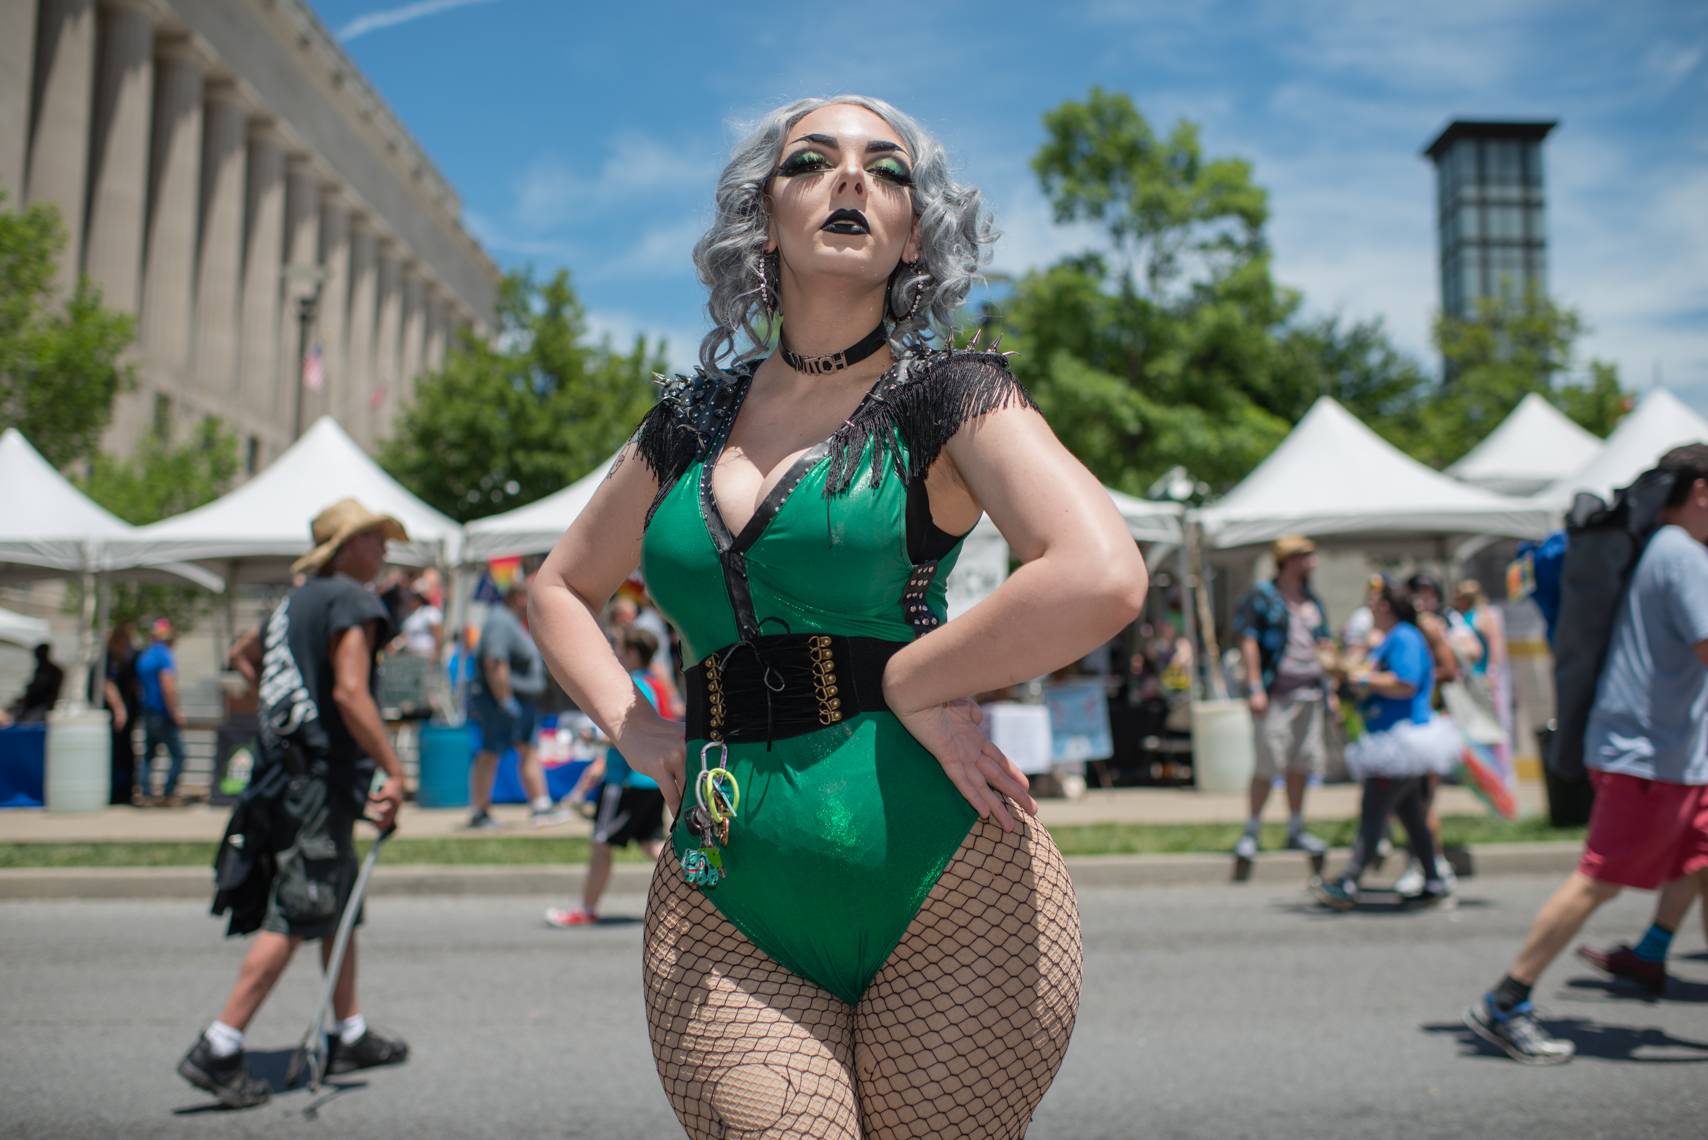 Nashville Pride Festival 2017 | Photographer + Director, Kristina Krug | authentic, authenticity, bisexual, celebrate, celebration, civil, civil liberties, courage, dancing, documentary, drag, emotions, equality, esteem, fearless, festival, festive, free, freedom, friends, fun, gay, happy, journalism, joy, joyful, Kristina Krug, krug photo, lesbian, LGBT, LGBTQ, liberty, love, love wins, loved, love is love, loveliness, lovers, love wins, men, National Pride Day, parade, people, photographer, photojournalism, photojournalist, Portrait, Predators, pride, Pride Parade, proud, queen, queer, relationship, reportage, respect, rights, safety, self, sexuality, summer, sun, sunny, drag queen, transgender woman at Public Square Park